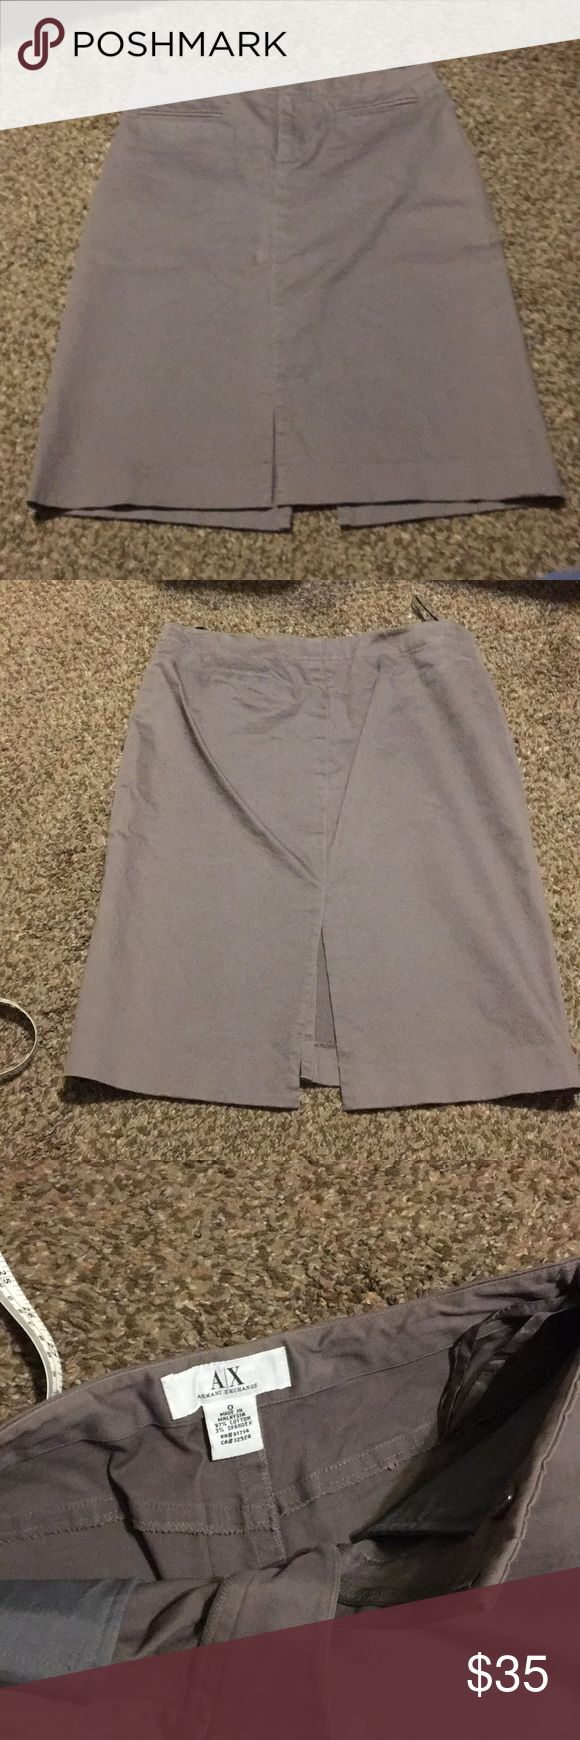 Armani exchange skirt Knee length (21inches). Size O. Super soft material. Excellent conditions. Has some markings but they are from the hanger (I think) since I haven't used it since it was last cleaned. A/X Armani Exchange Skirts Pencil